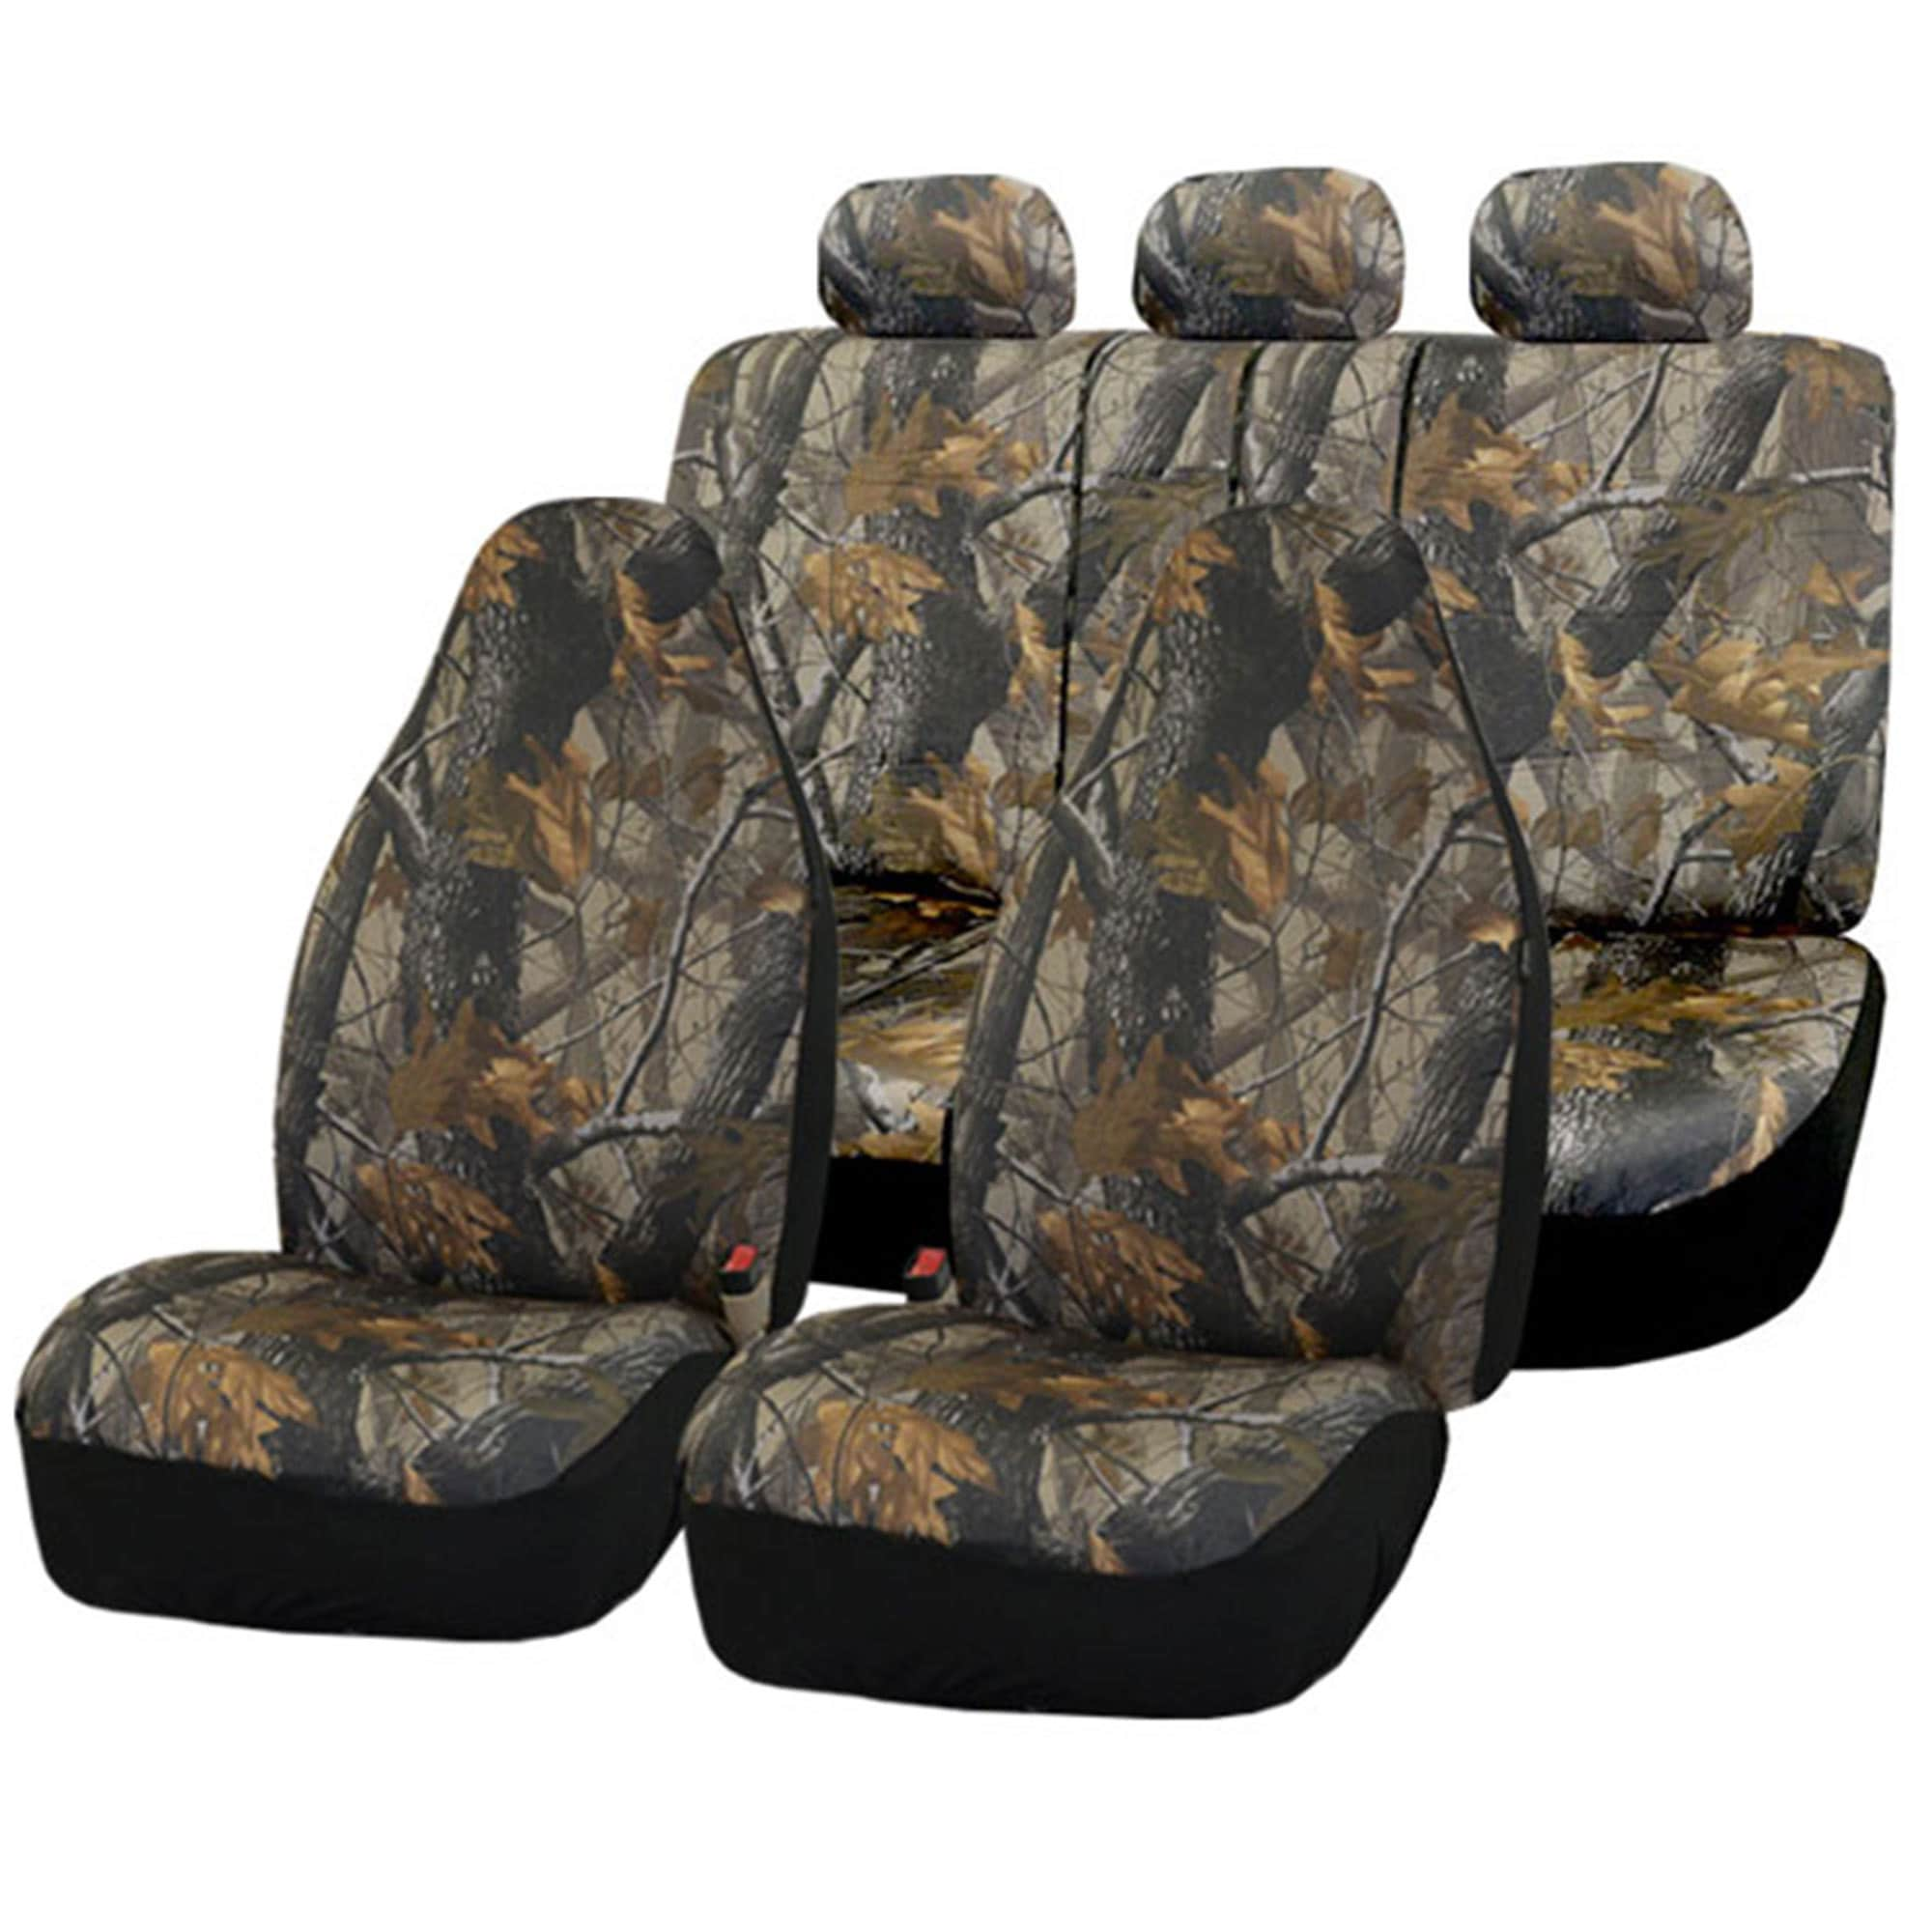 FH Group Hunting Camouflage Airbag-safe Car Seat Covers (...